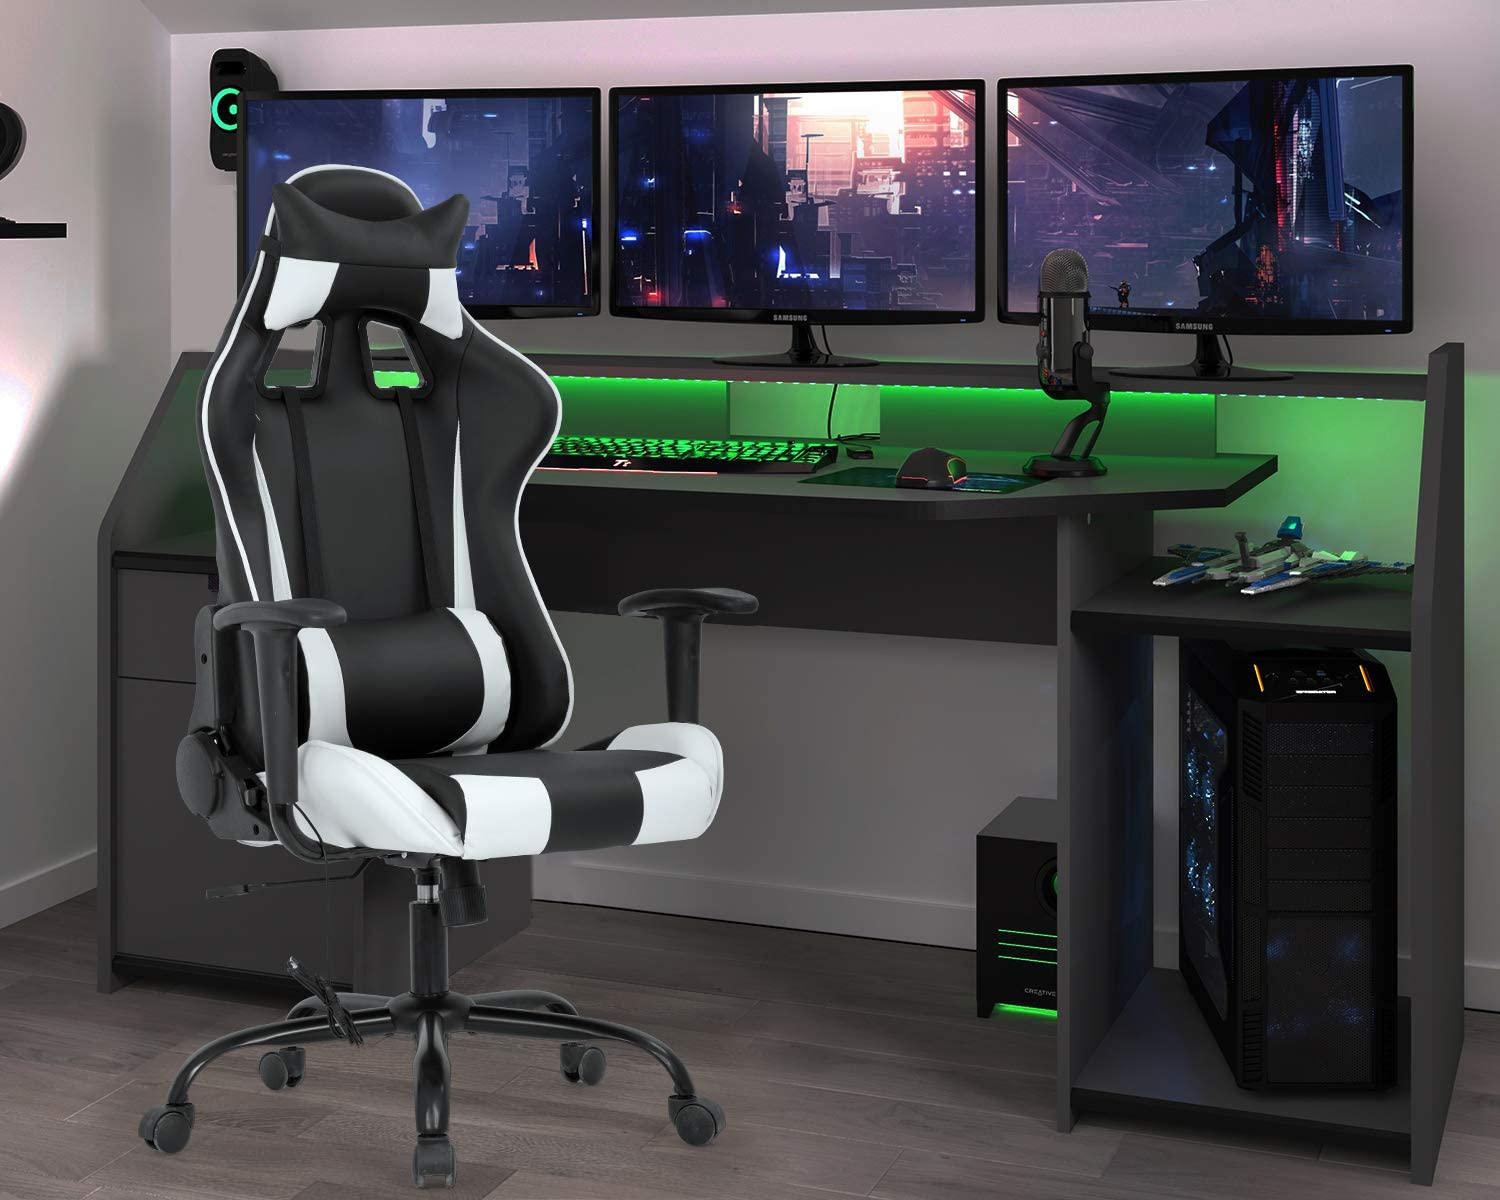 Gaming Chair Racing Office Chair Massage Swivel Chair High Back PU Leather Executive Rolling Task Adjustable Computer Chair with Lumbar Support Headrest Armrest Desk Chair for Adults White